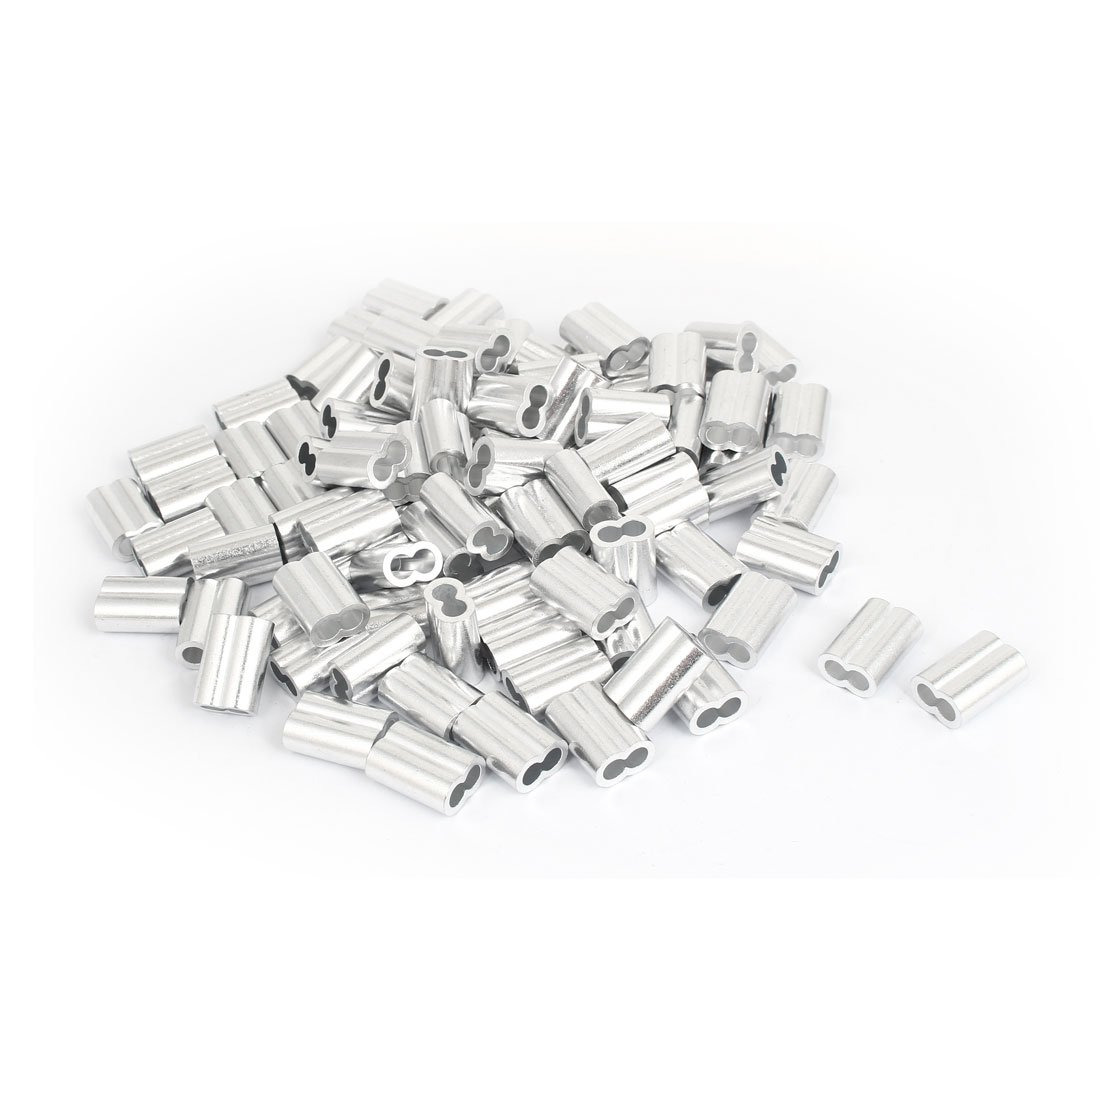 uxcell Double Hole Aluminum Sleeves Silver Tone 100 Pcs for 1/4'' Wire Rope